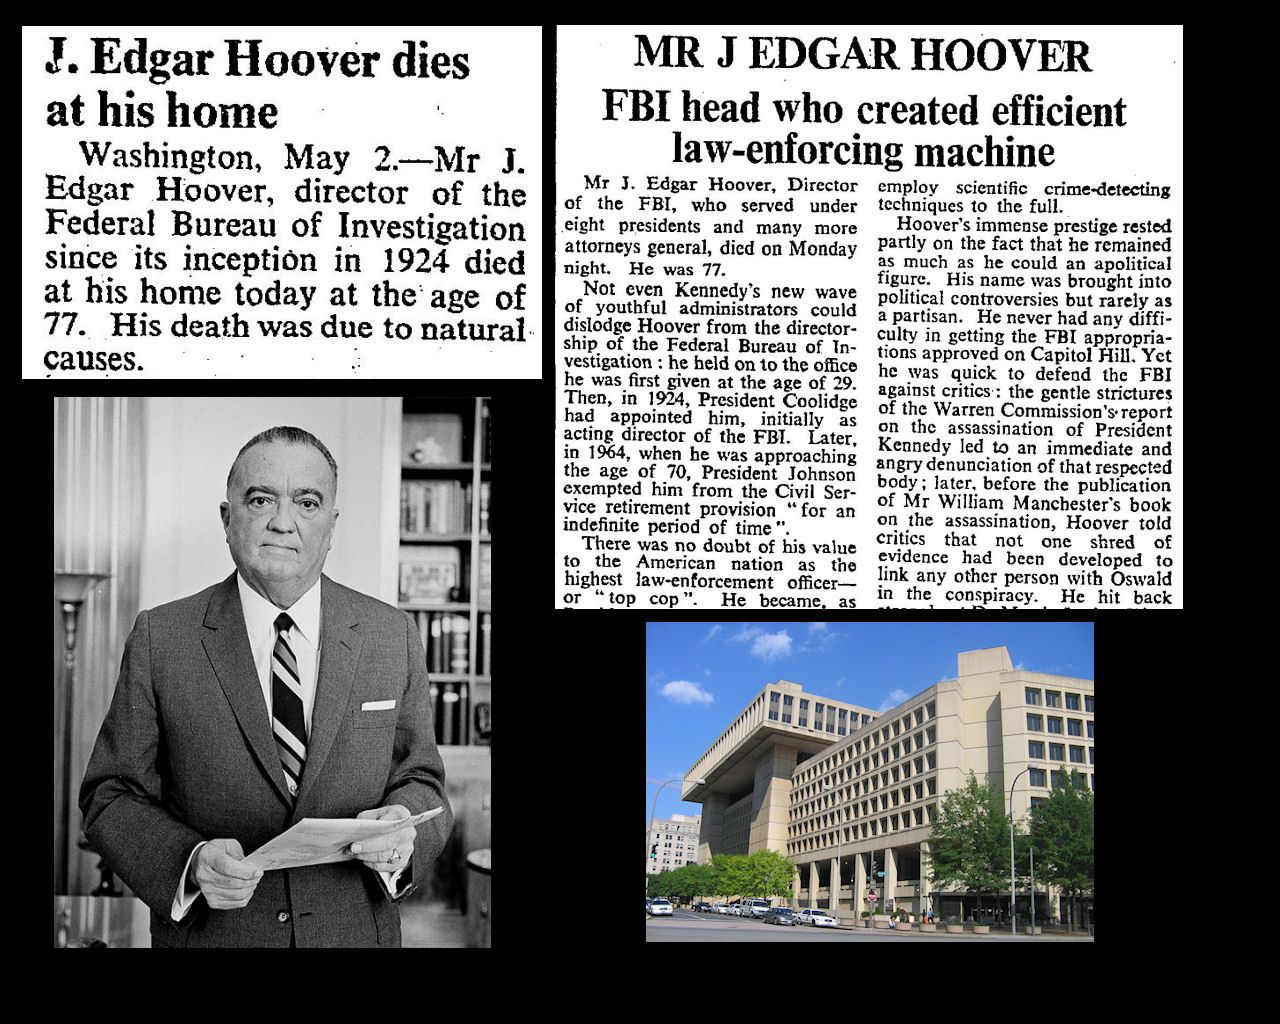 2nd May 1972 - Death of J. Edgar Hoover